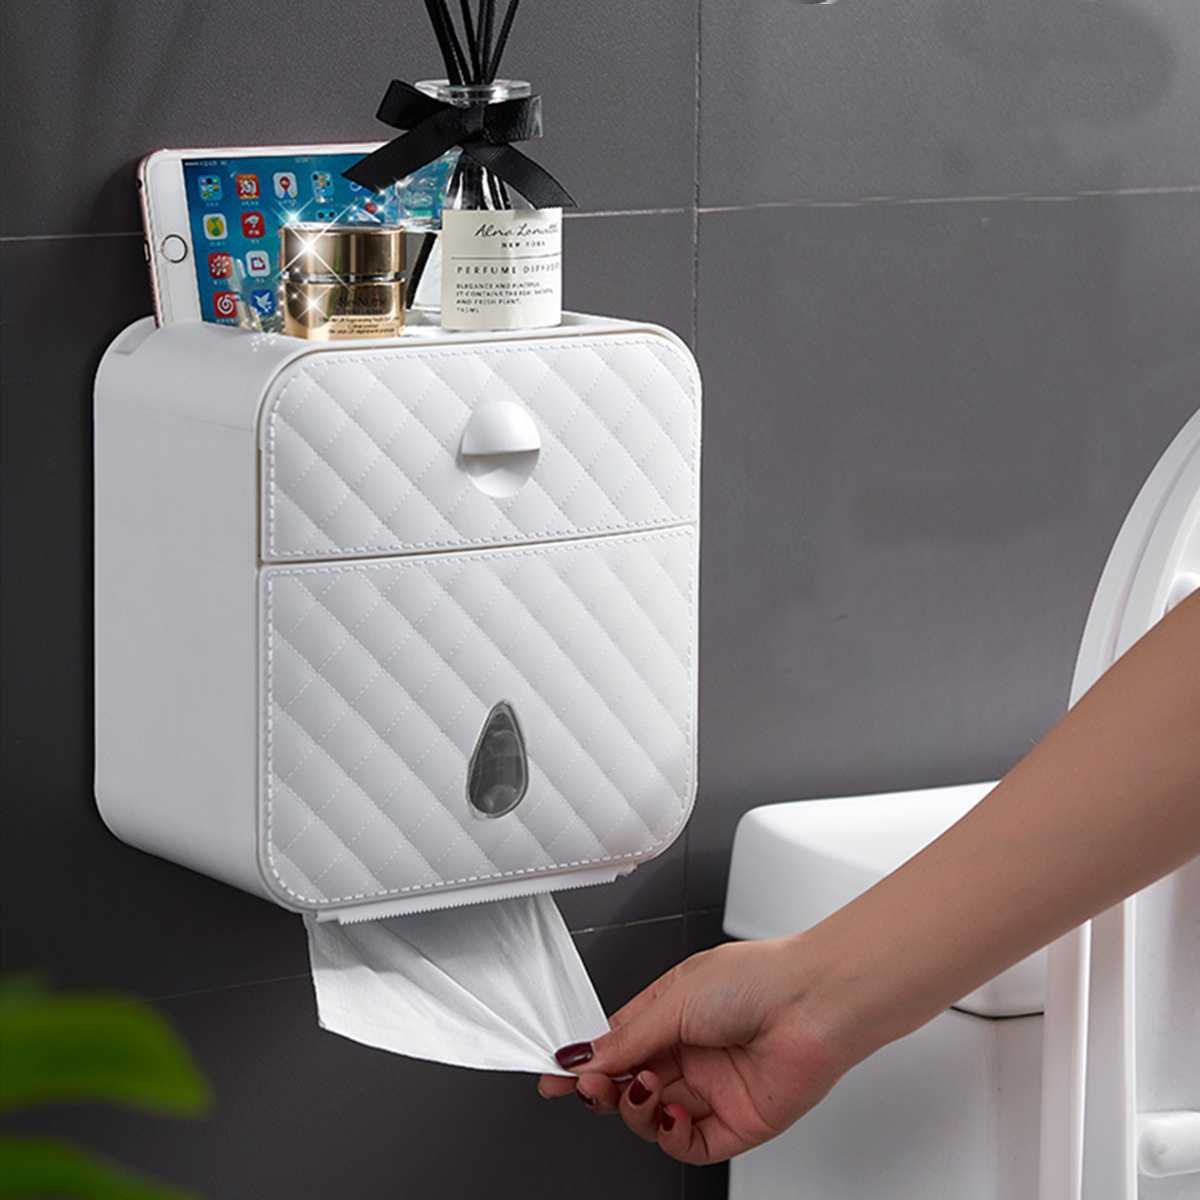 White Plastic Toilet Paper Holder Wall-mounted Tissue Box Case Storage Rack Tissue Dispenser Bathroom Accessories Organizer